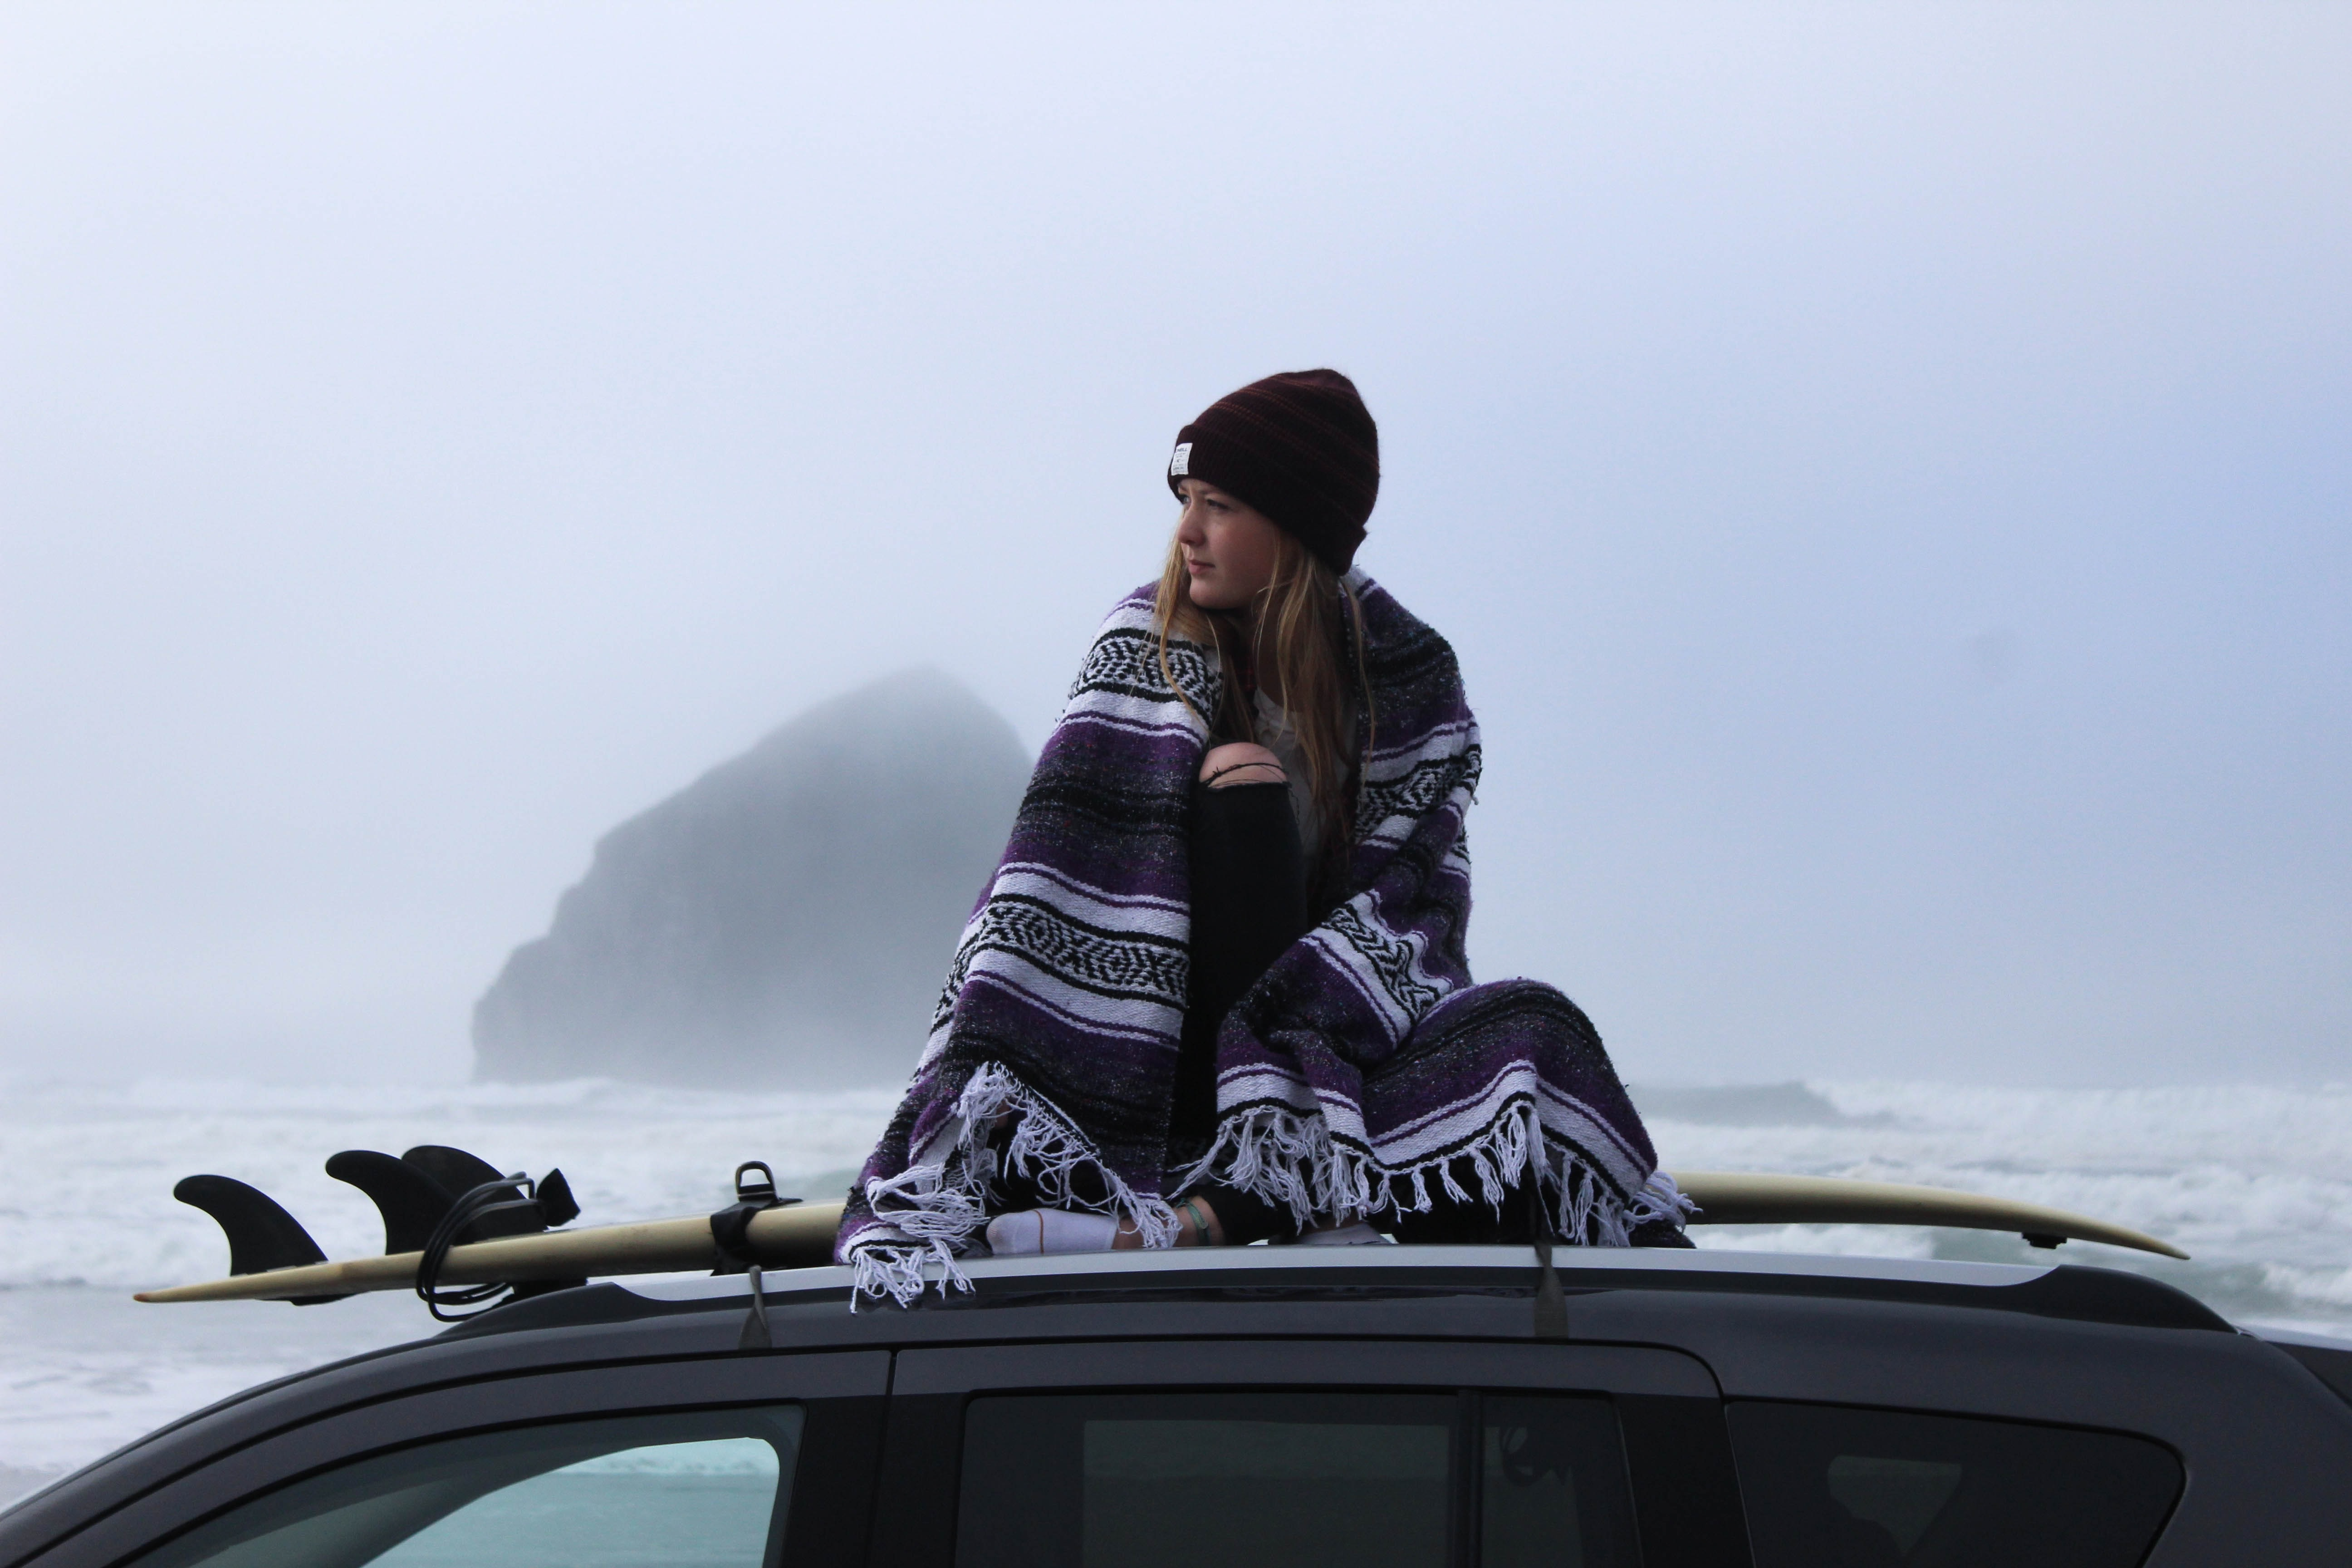 Woman wrapped up in a blanket sitting on a car roof by the surfboard at Cannon Beach